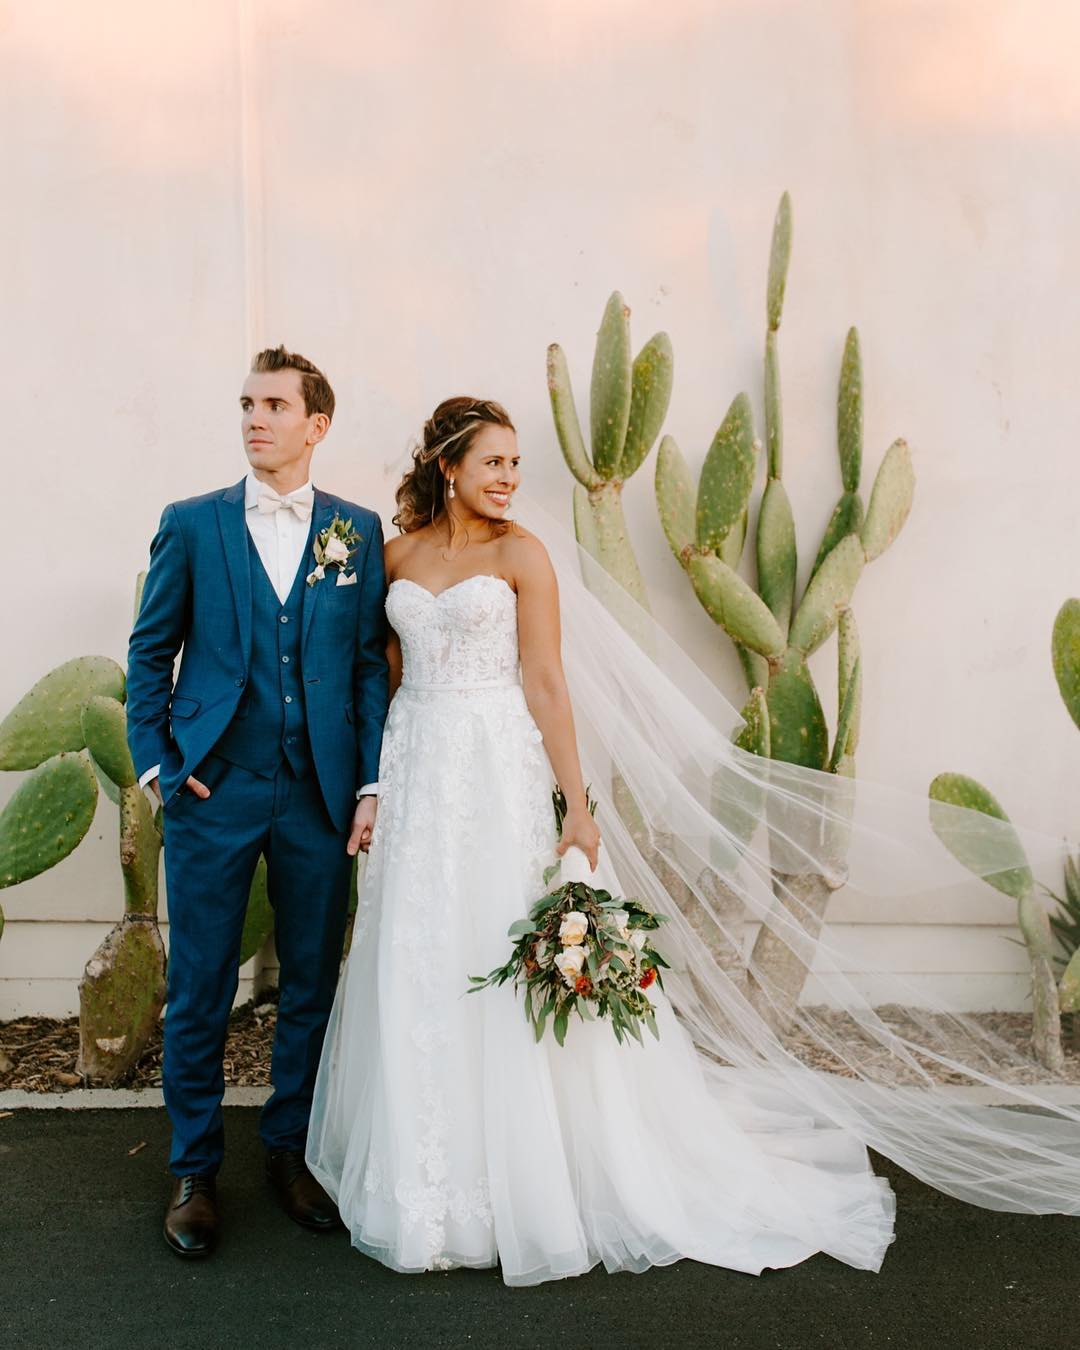 Bride in strapless ballgown with groom in blue three-piece suit stand near a cactus.